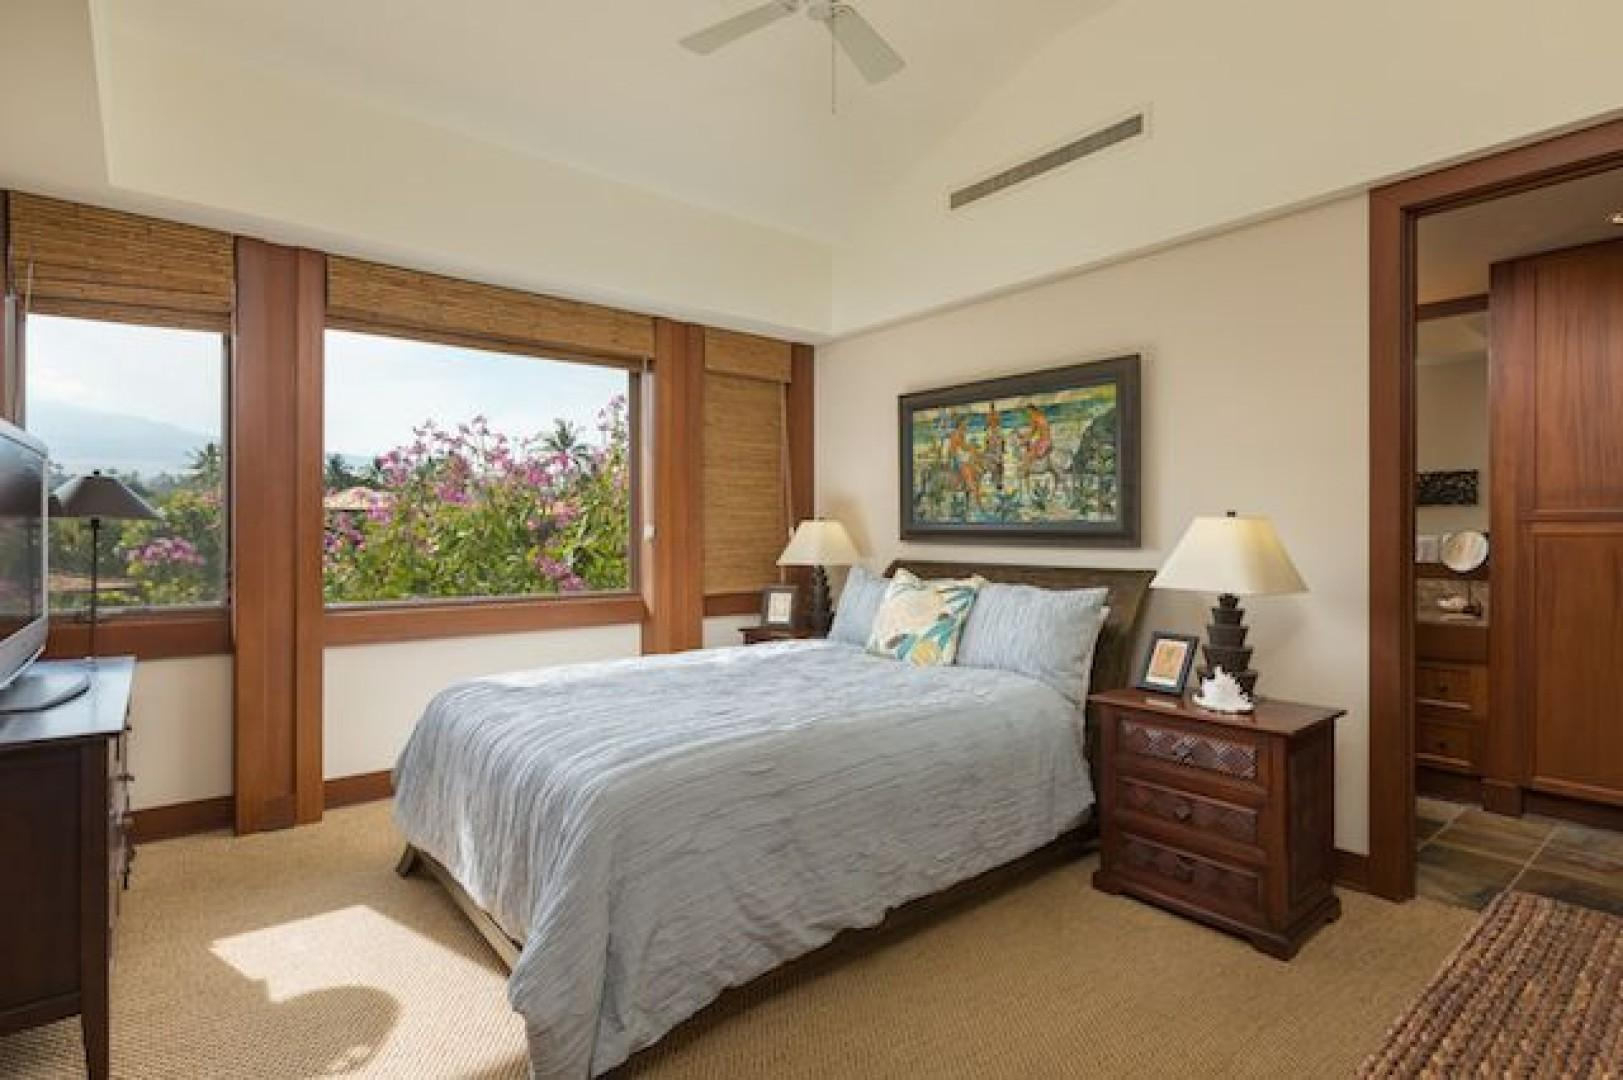 2nd Bedroom with Queen Bed and its own ensuite bath